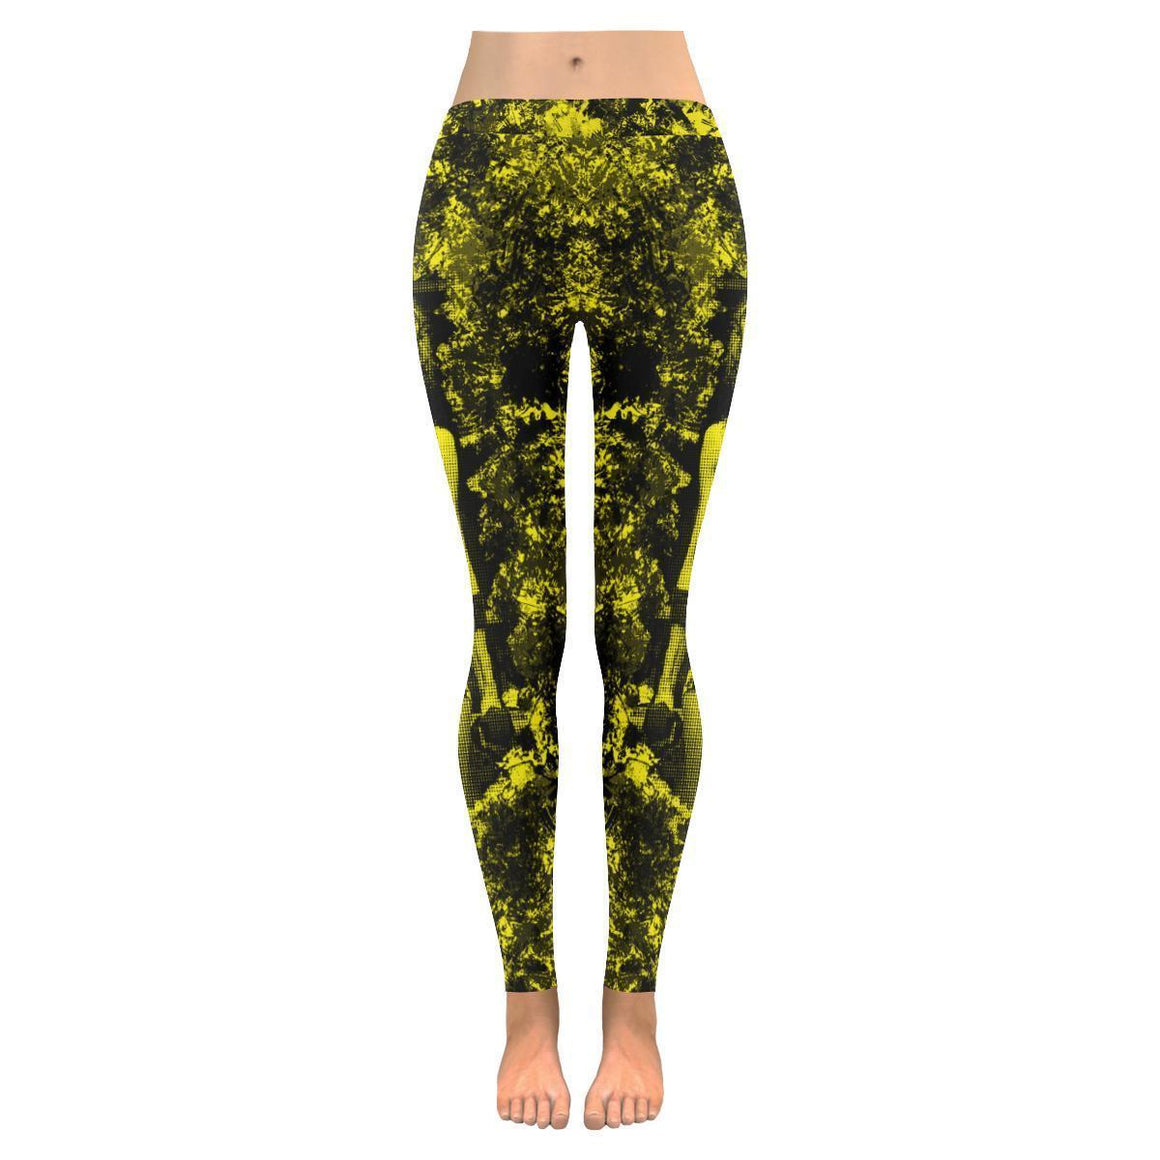 e-joyer Low Rise Leggings (Invisible Stitch) XXS Fitness Neon Yellow Low Rise Leggings